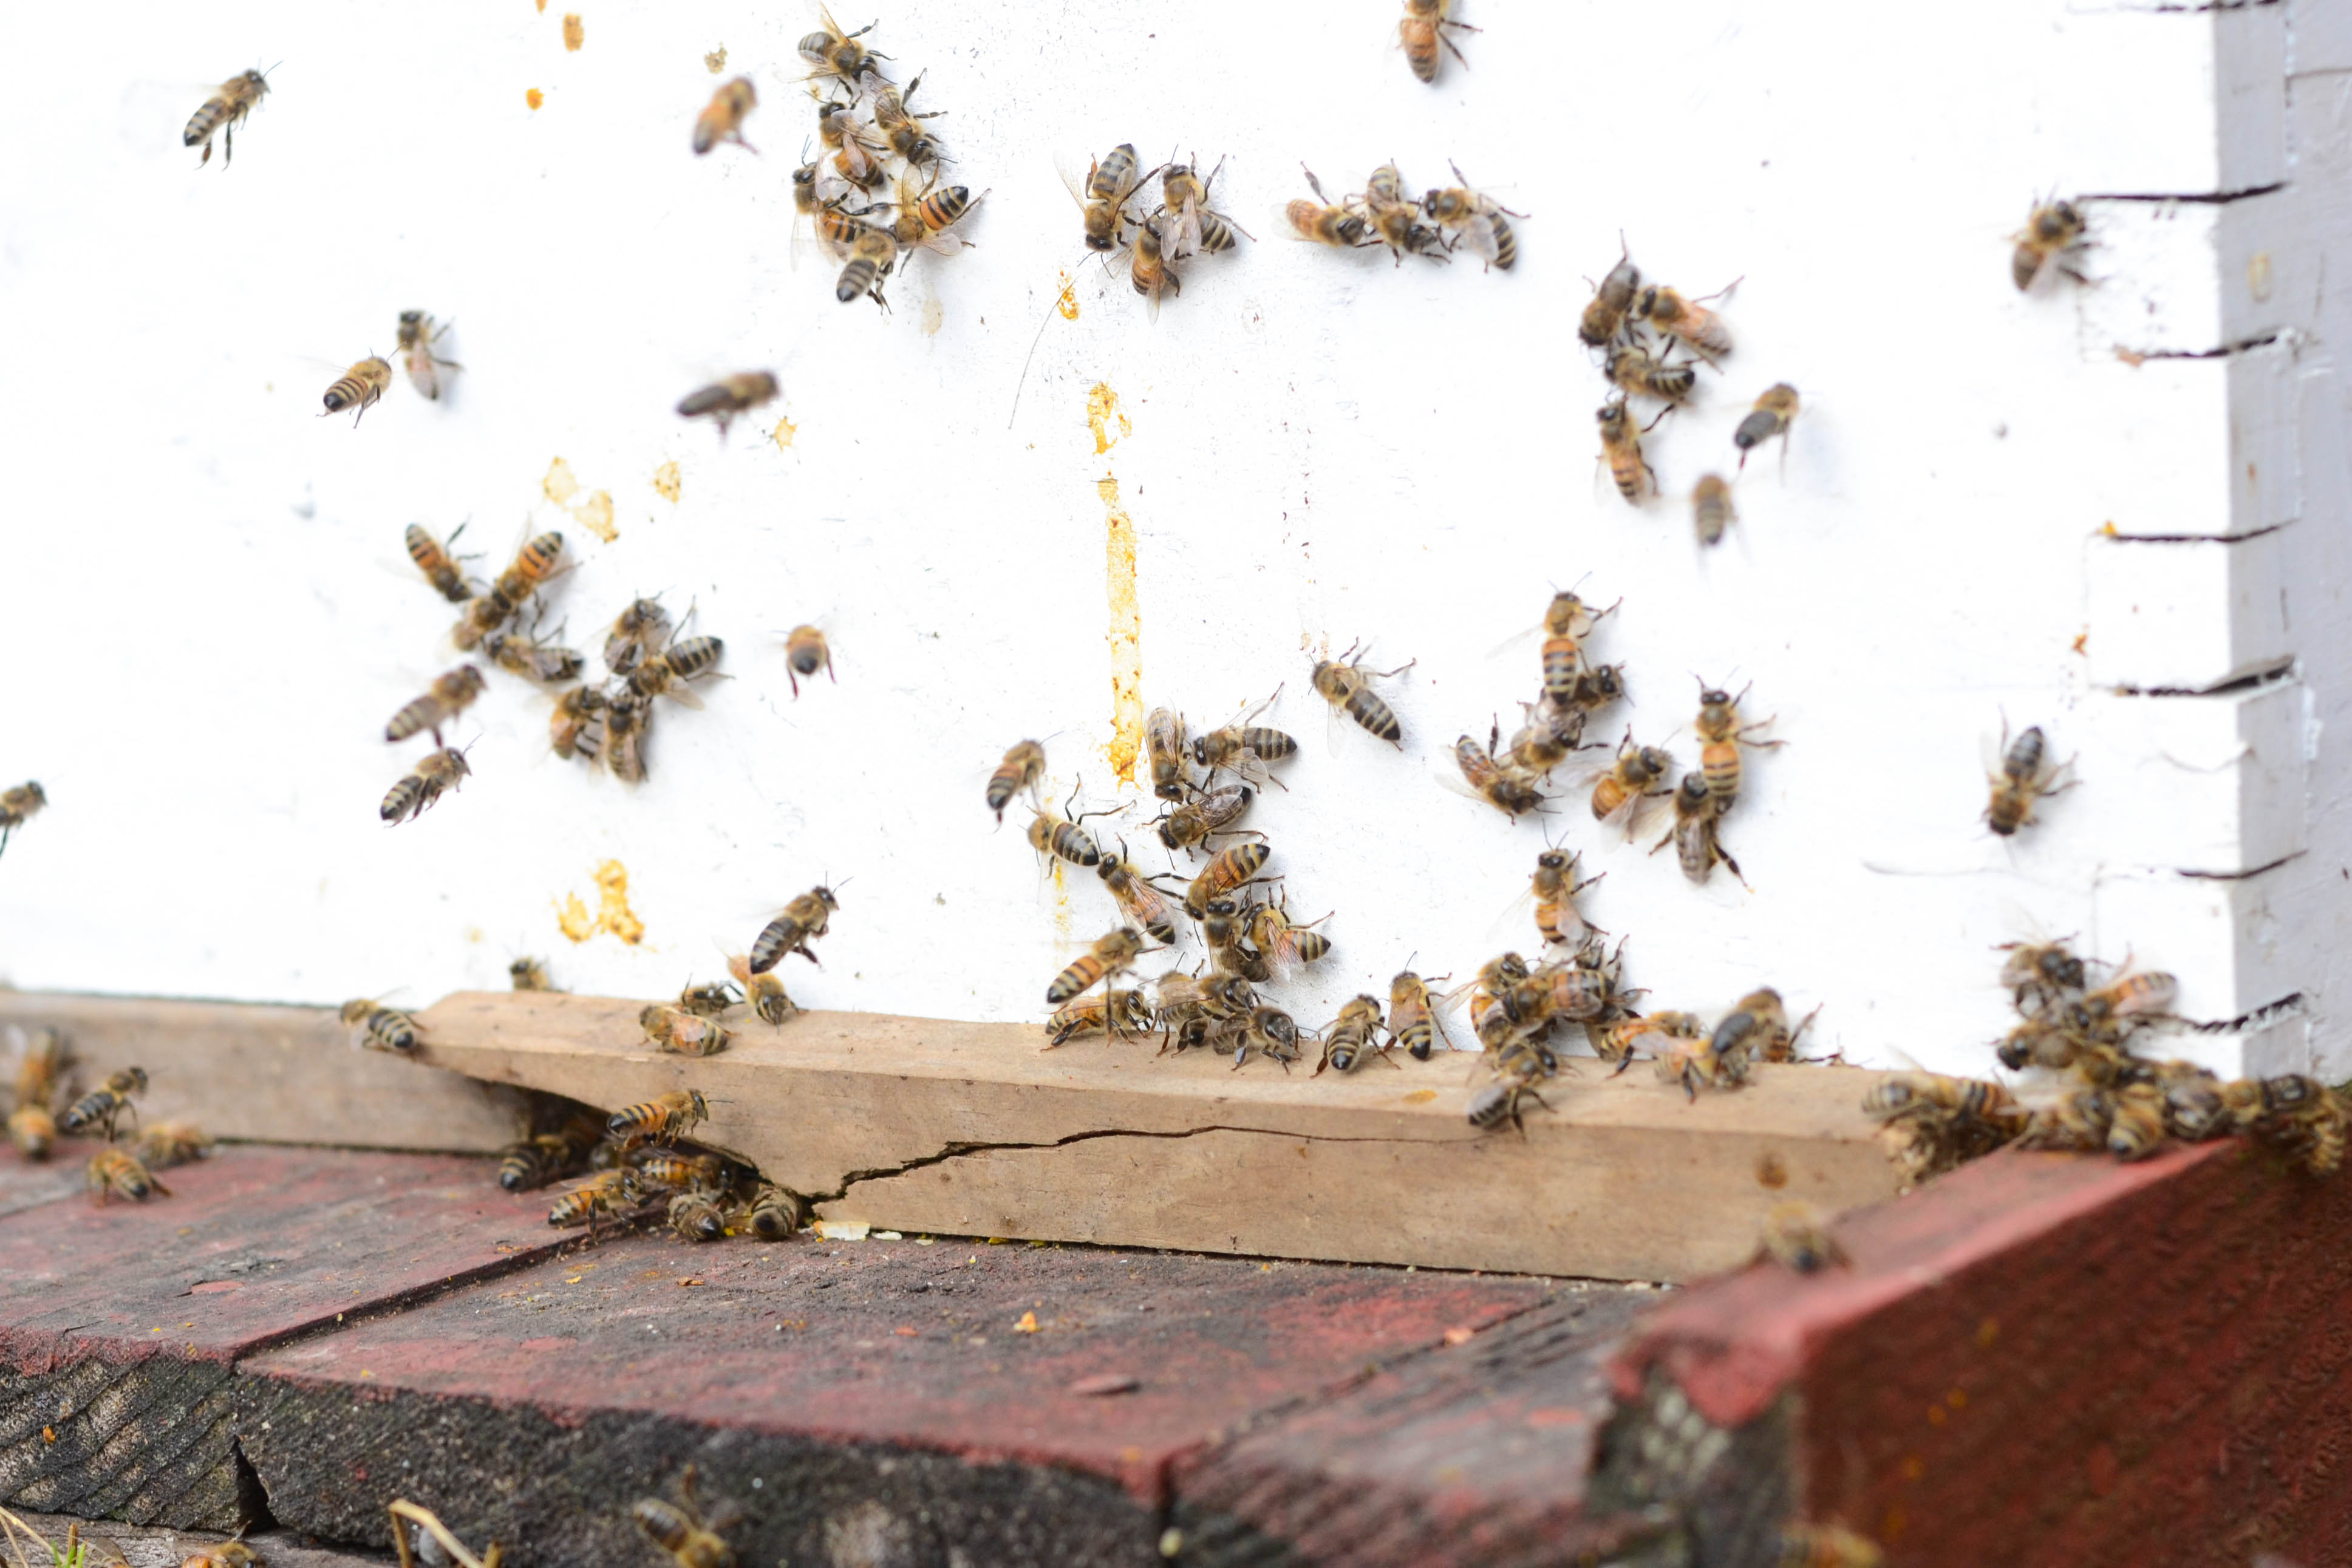 Bees Flying in Winter